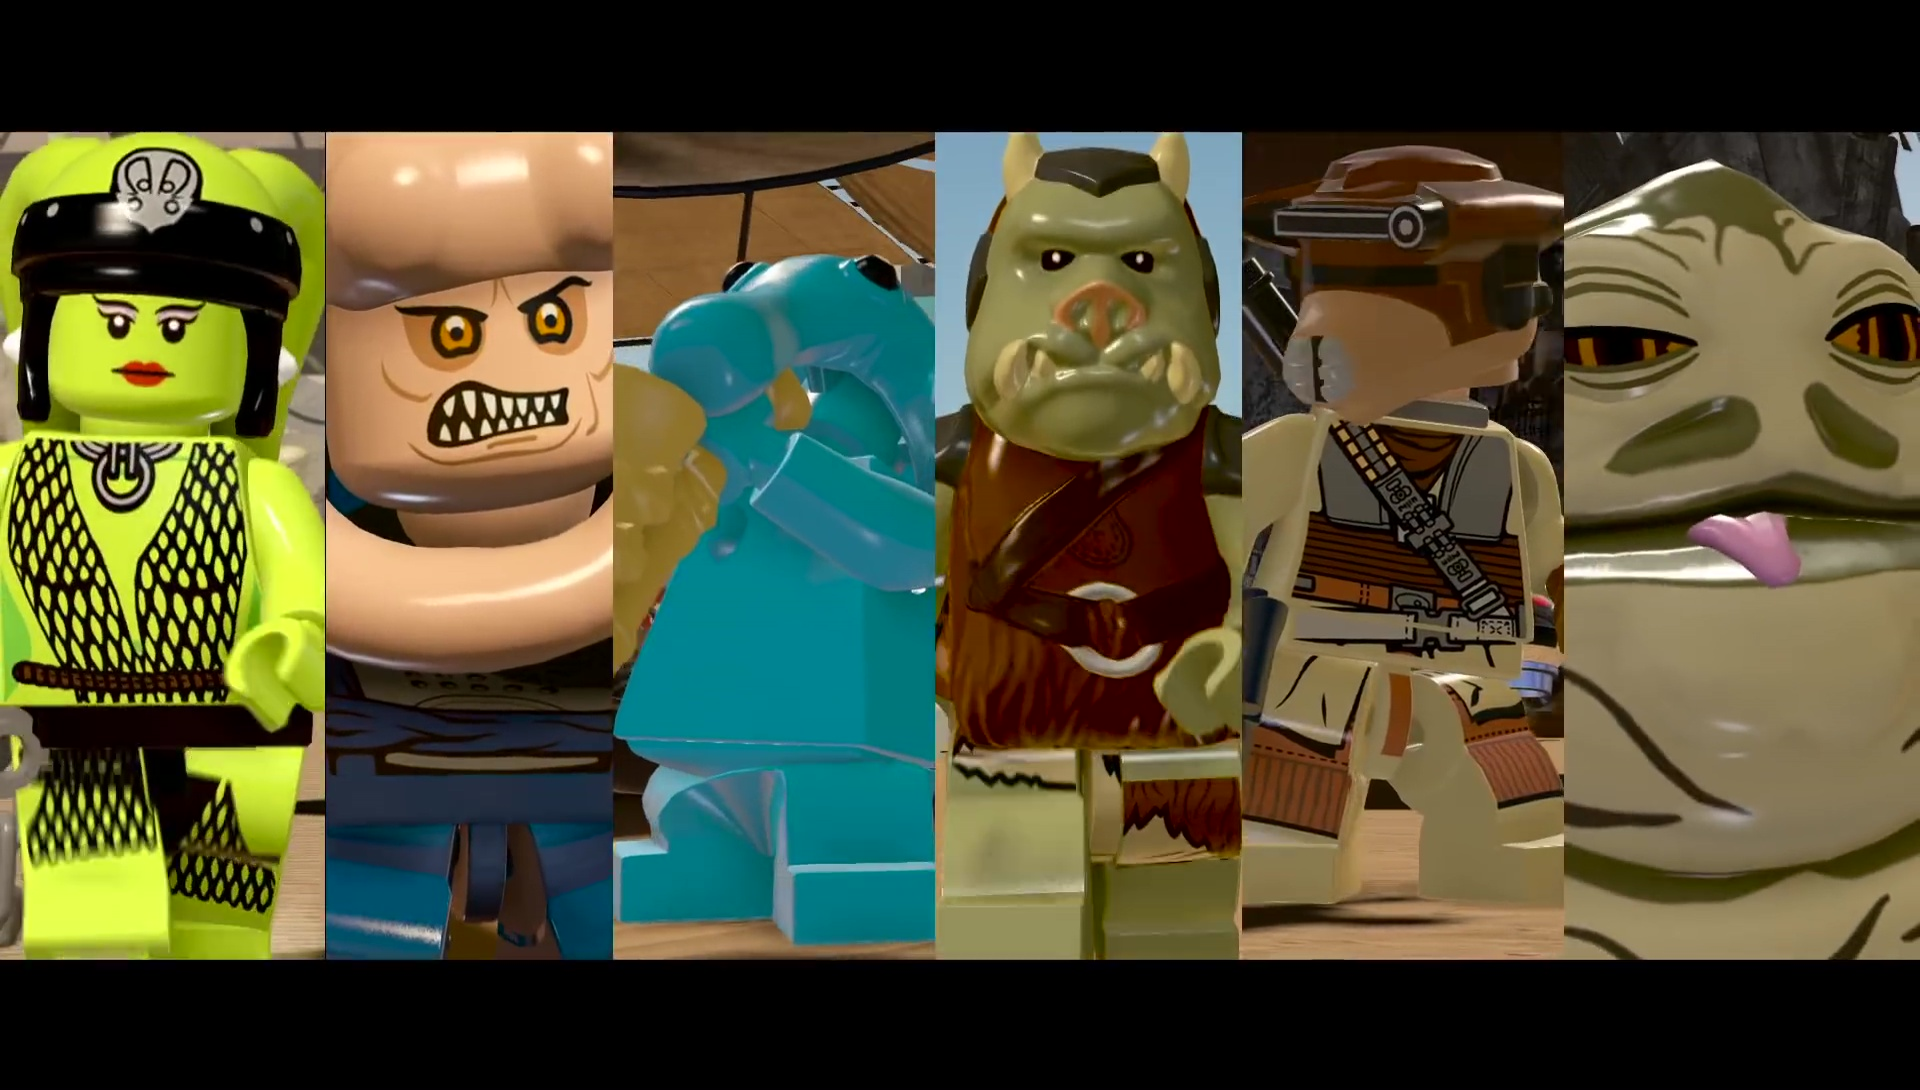 Lego Star Wars The Force Awakens Jabbas Palace Trailer